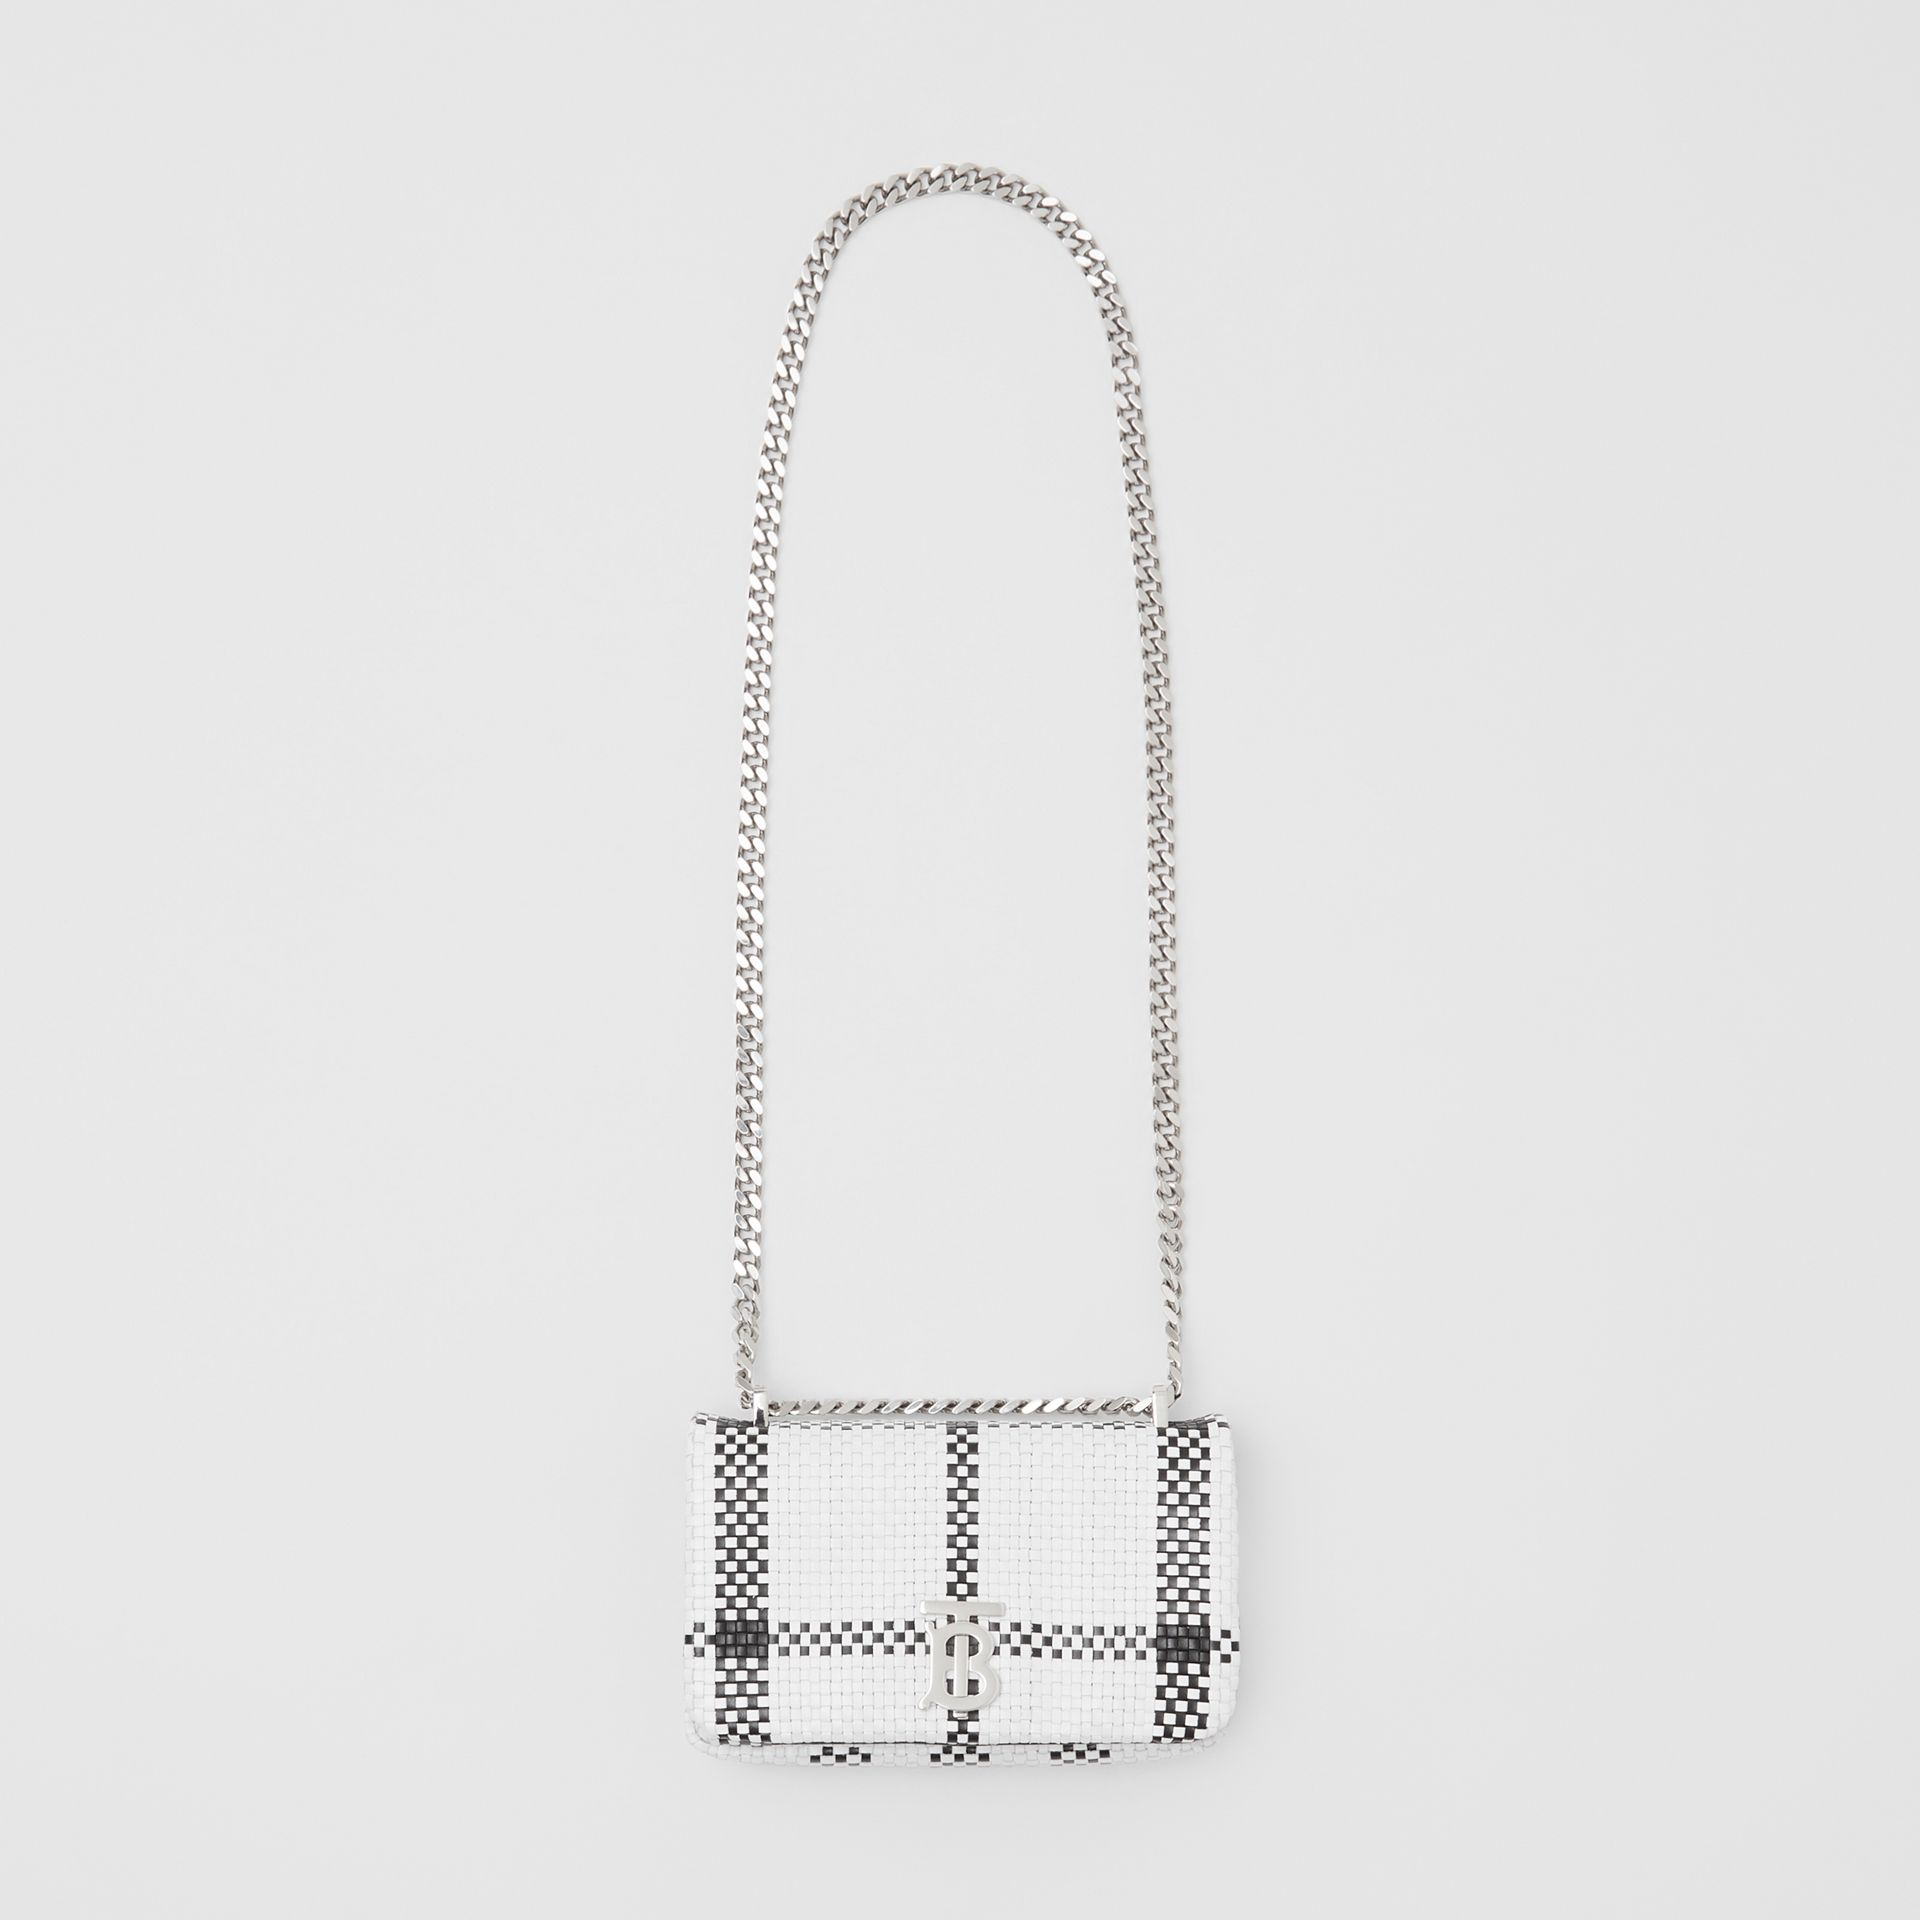 Mini Latticed Leather Lola Bag in Black/white - Women | Burberry - gallery image 3